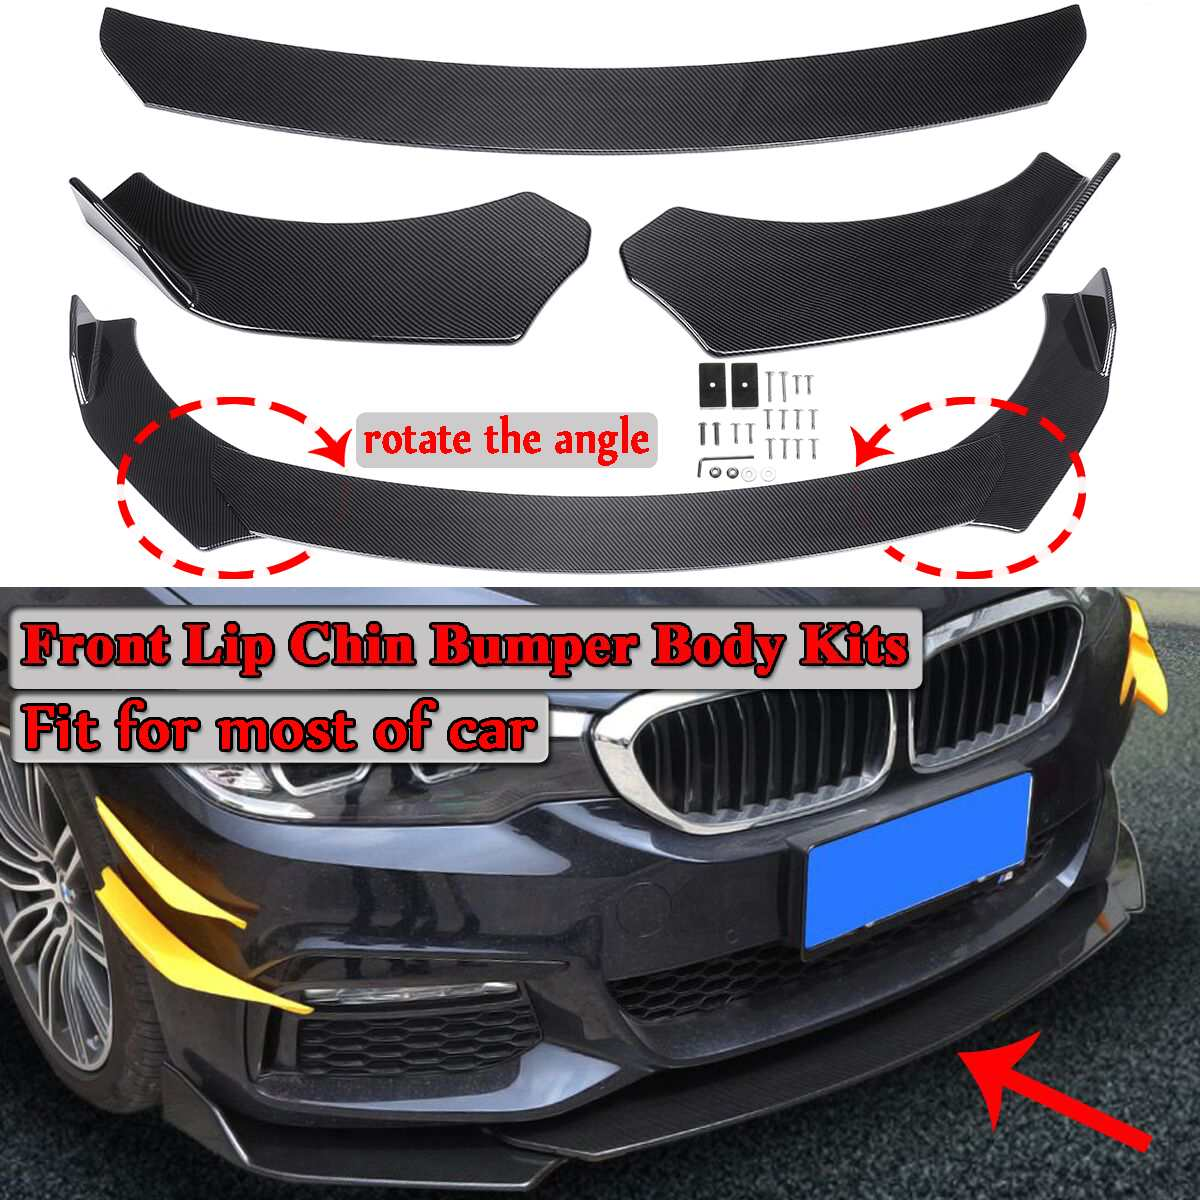 Carbon Fiber Look/ Black Universal 3Pieces Car Front Lip Chin Bumper Body Kits Rotate The Angle New For Honda For Civic For Benz